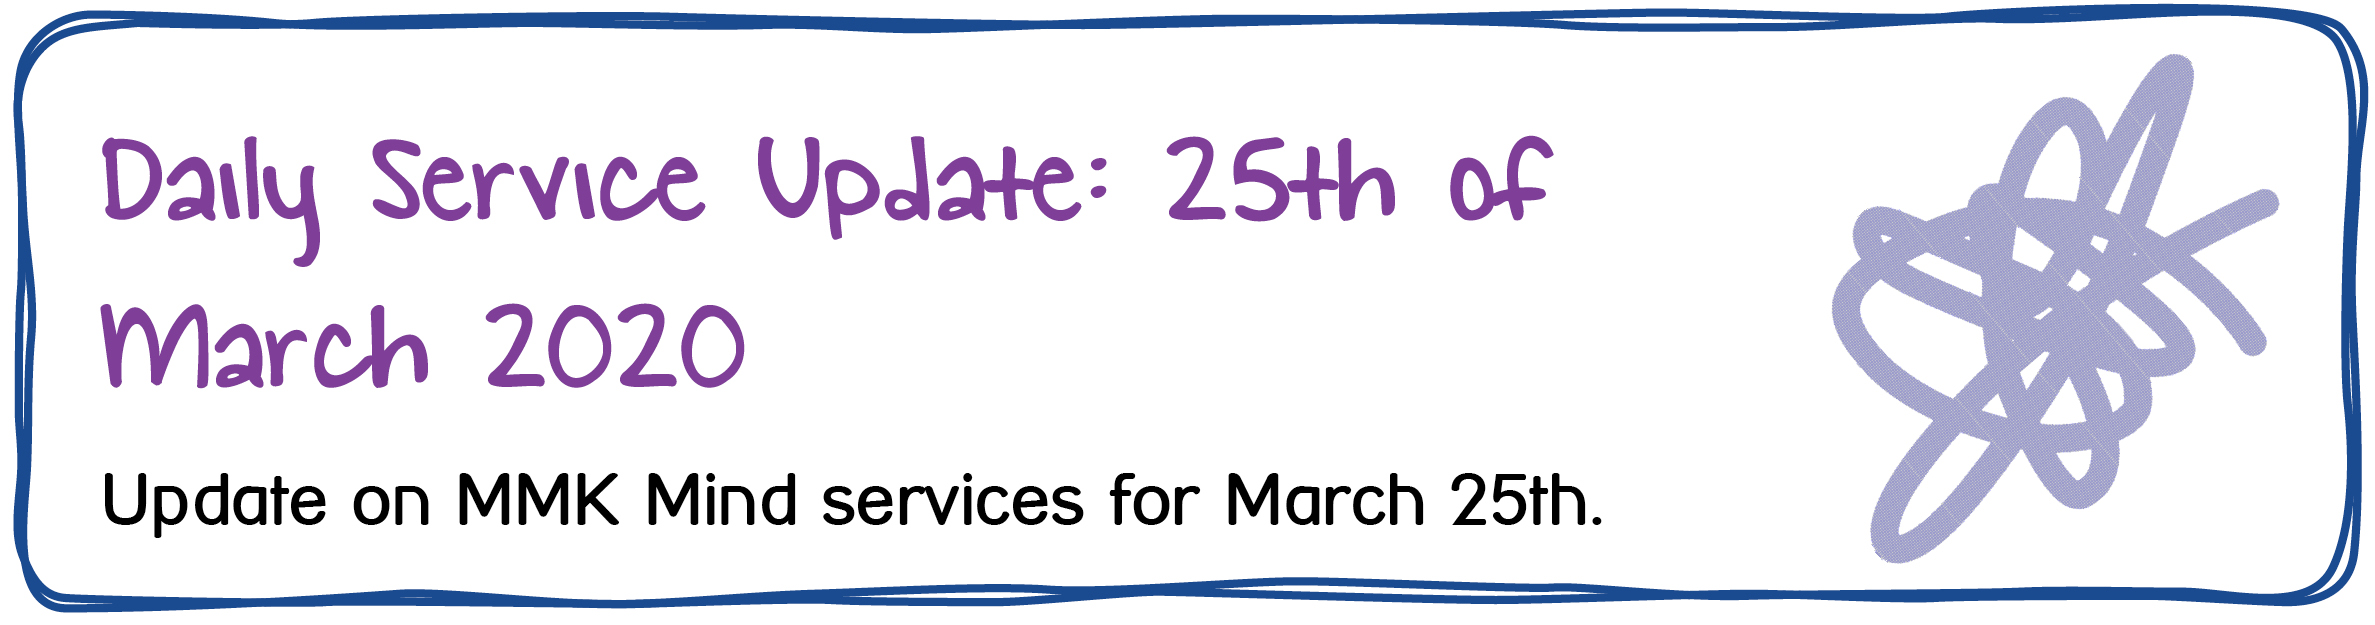 Daily Service Update: 25th of March 2020. Update on MMK Mind services for March 25th.